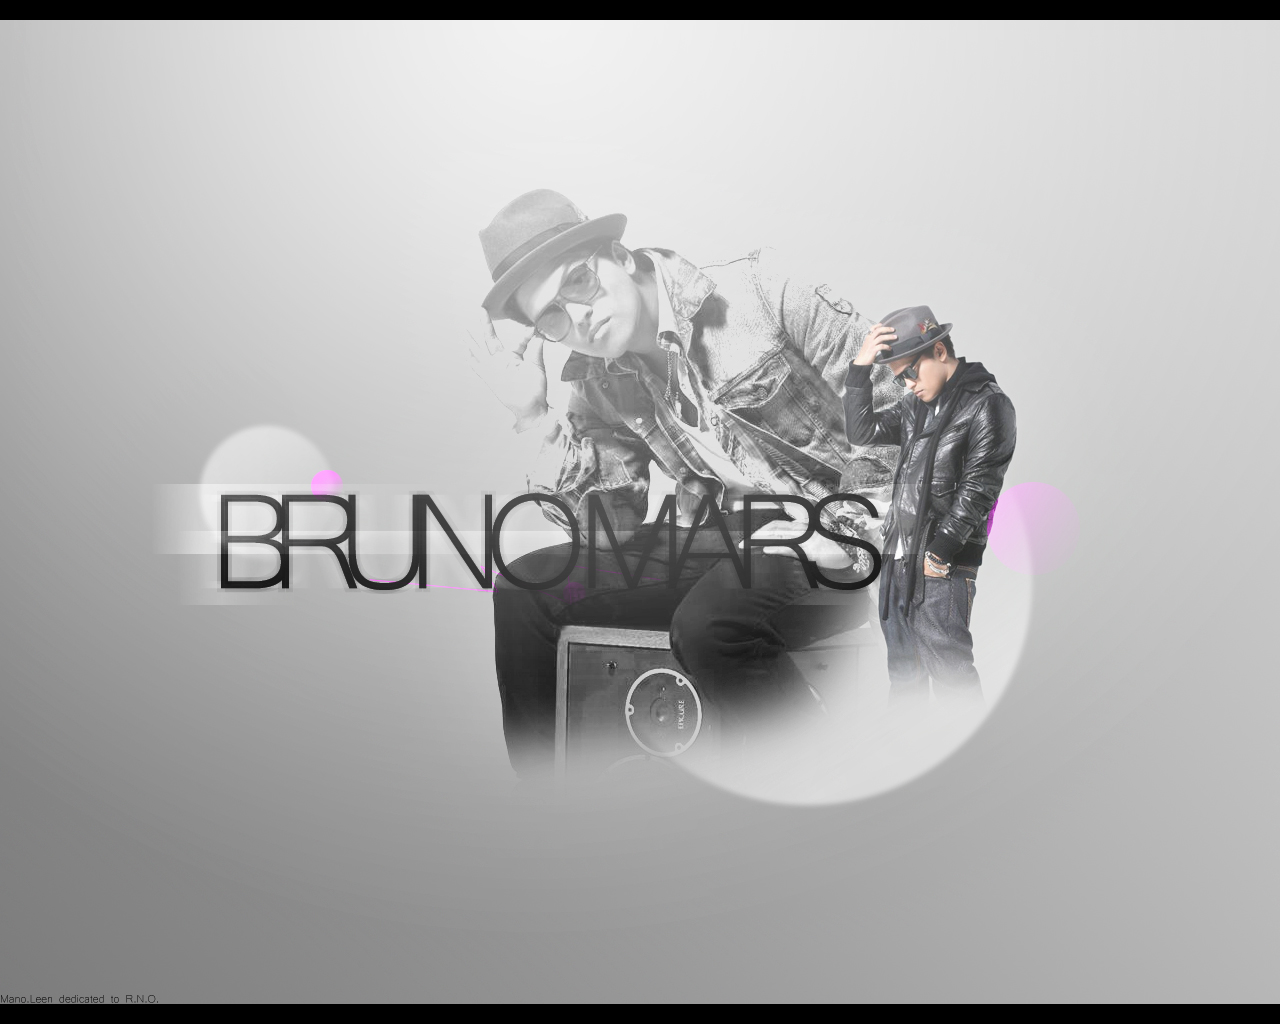 Bruno Mars Hd Pics: Rebekahfinfrock: Bruno Mars Wallpapers